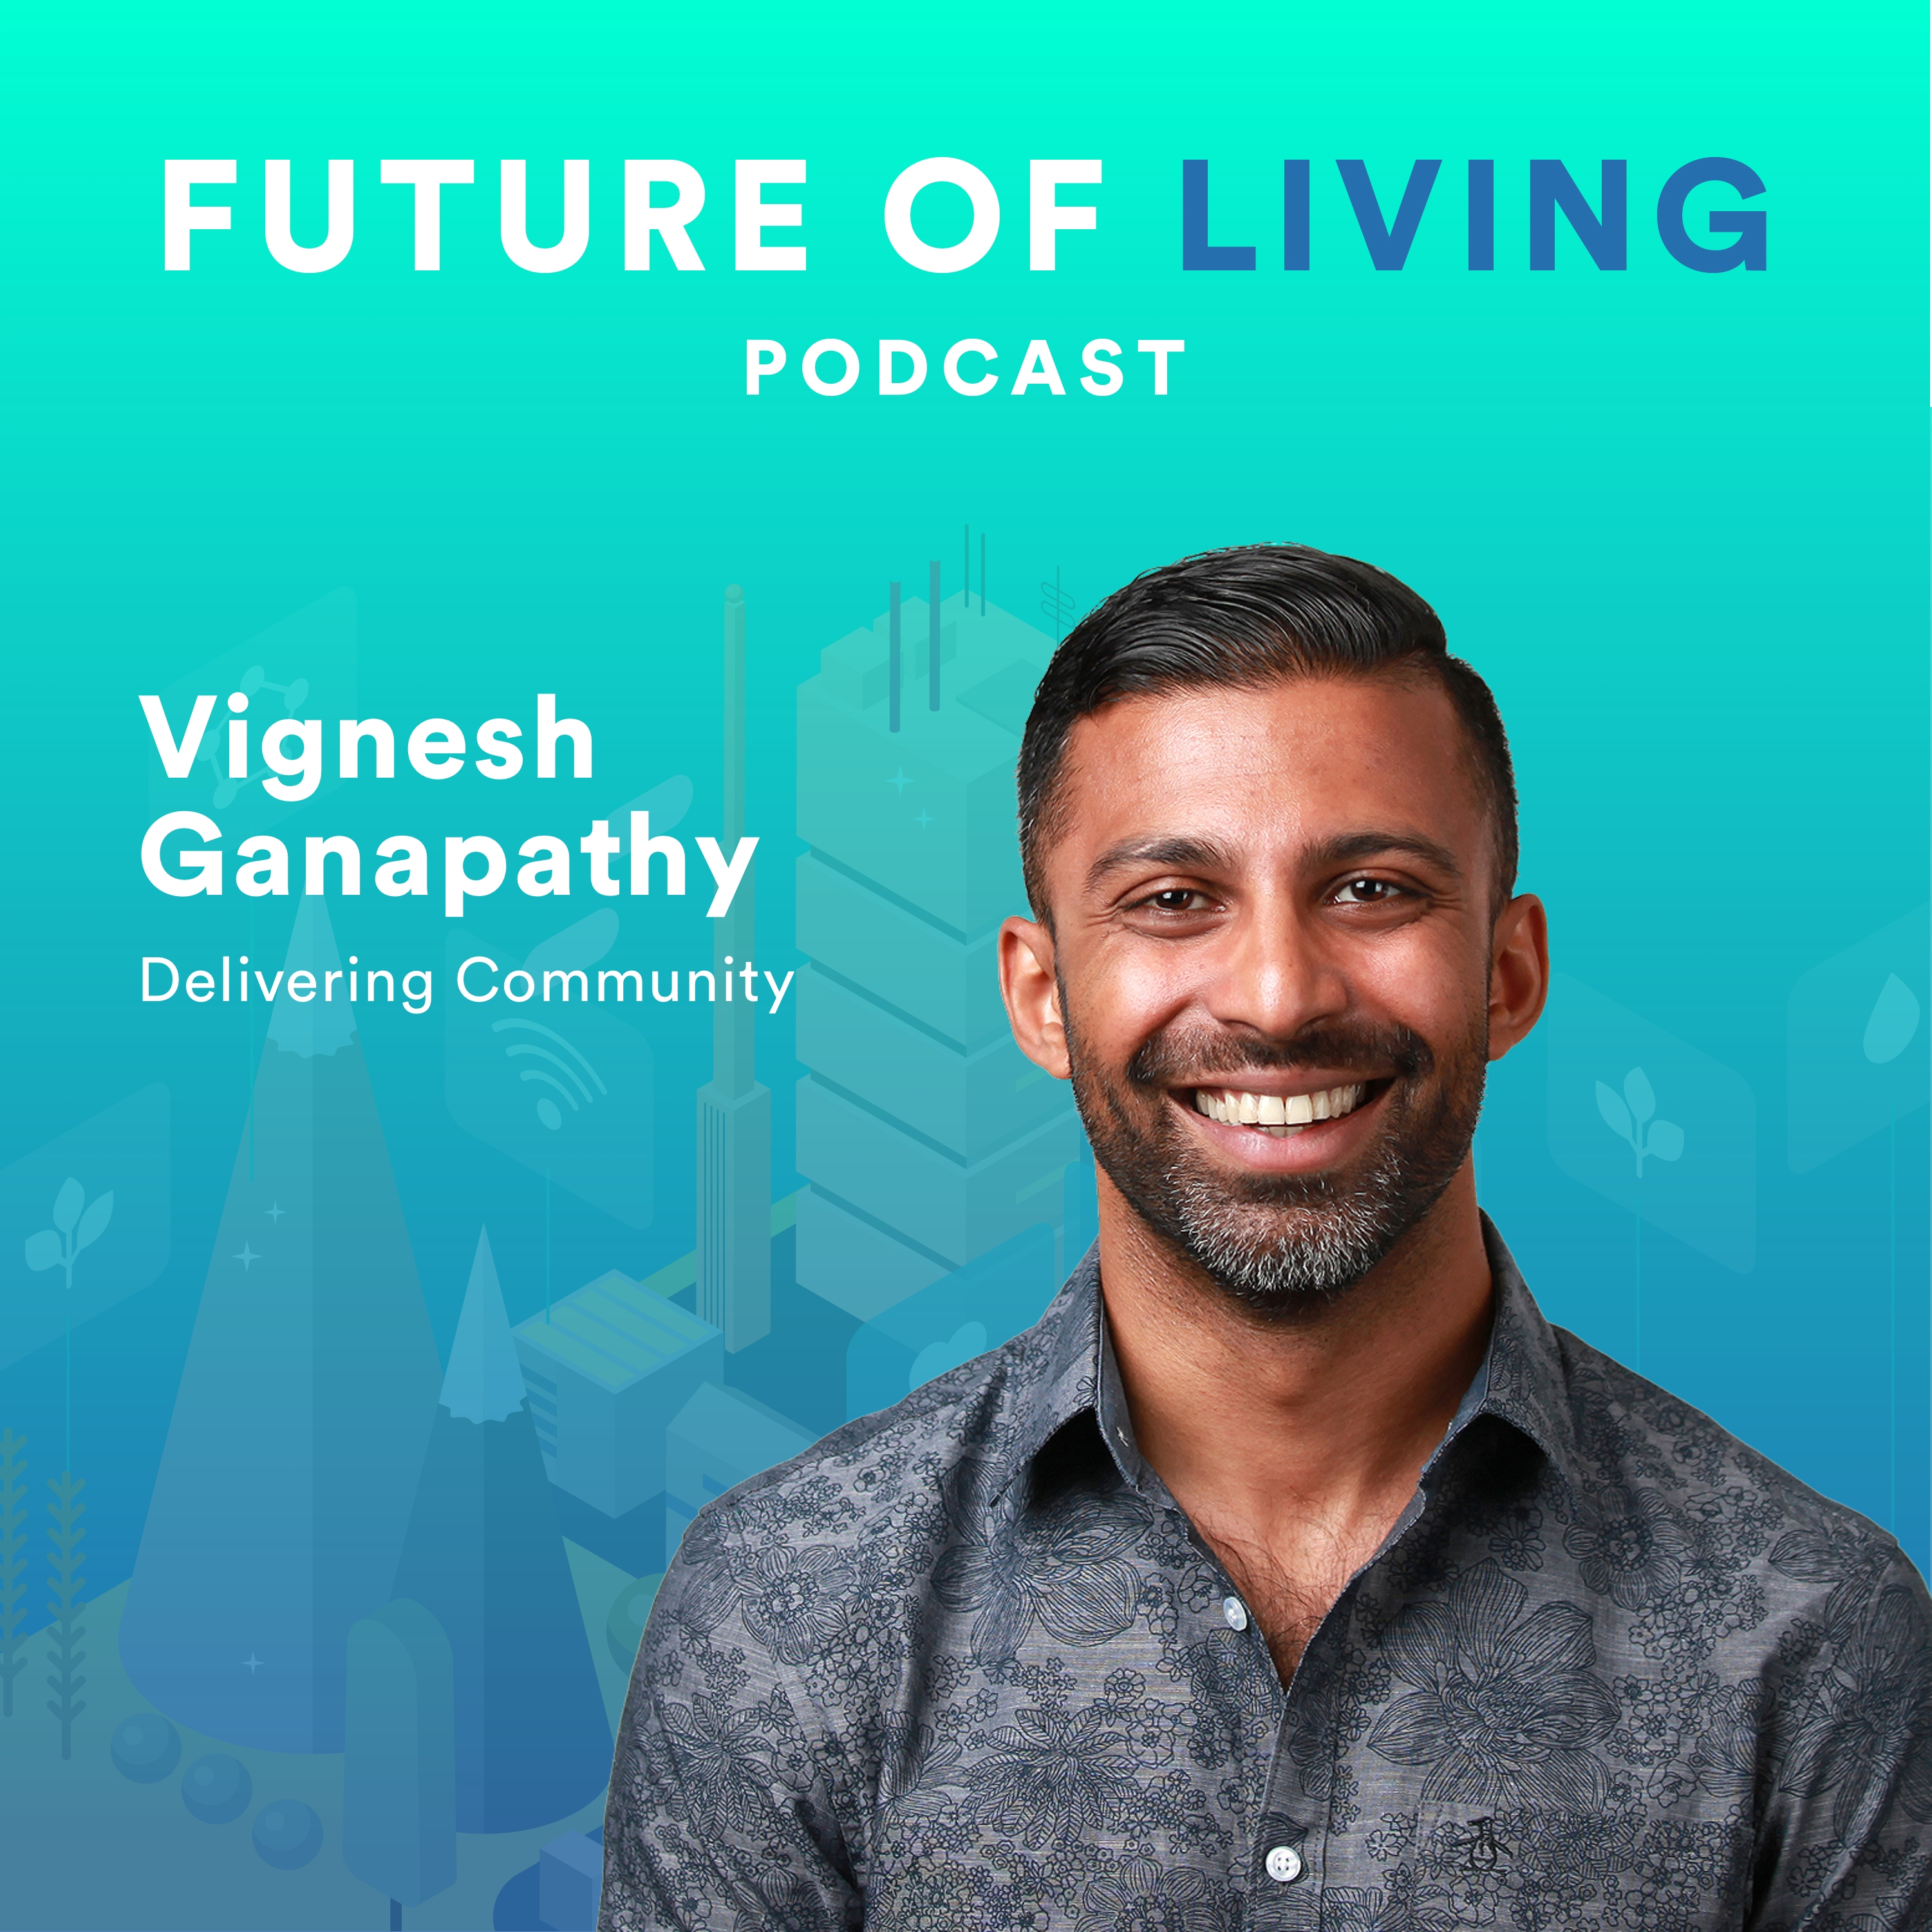 Vignesh Ganapathy episode cover